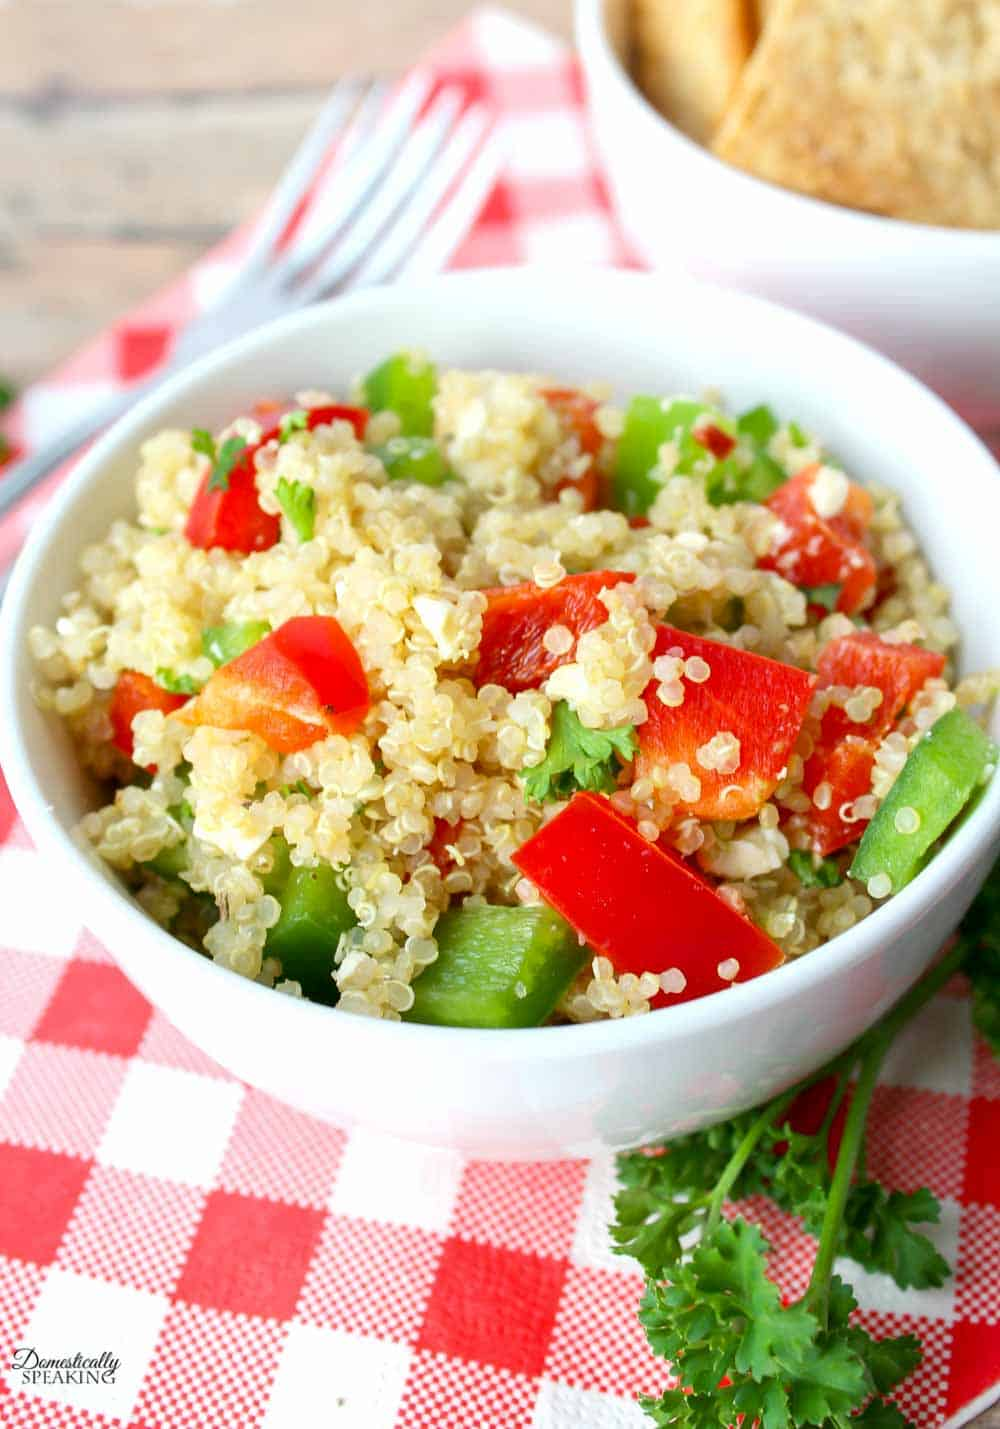 Quinoa Salad with peppers in a bowl.